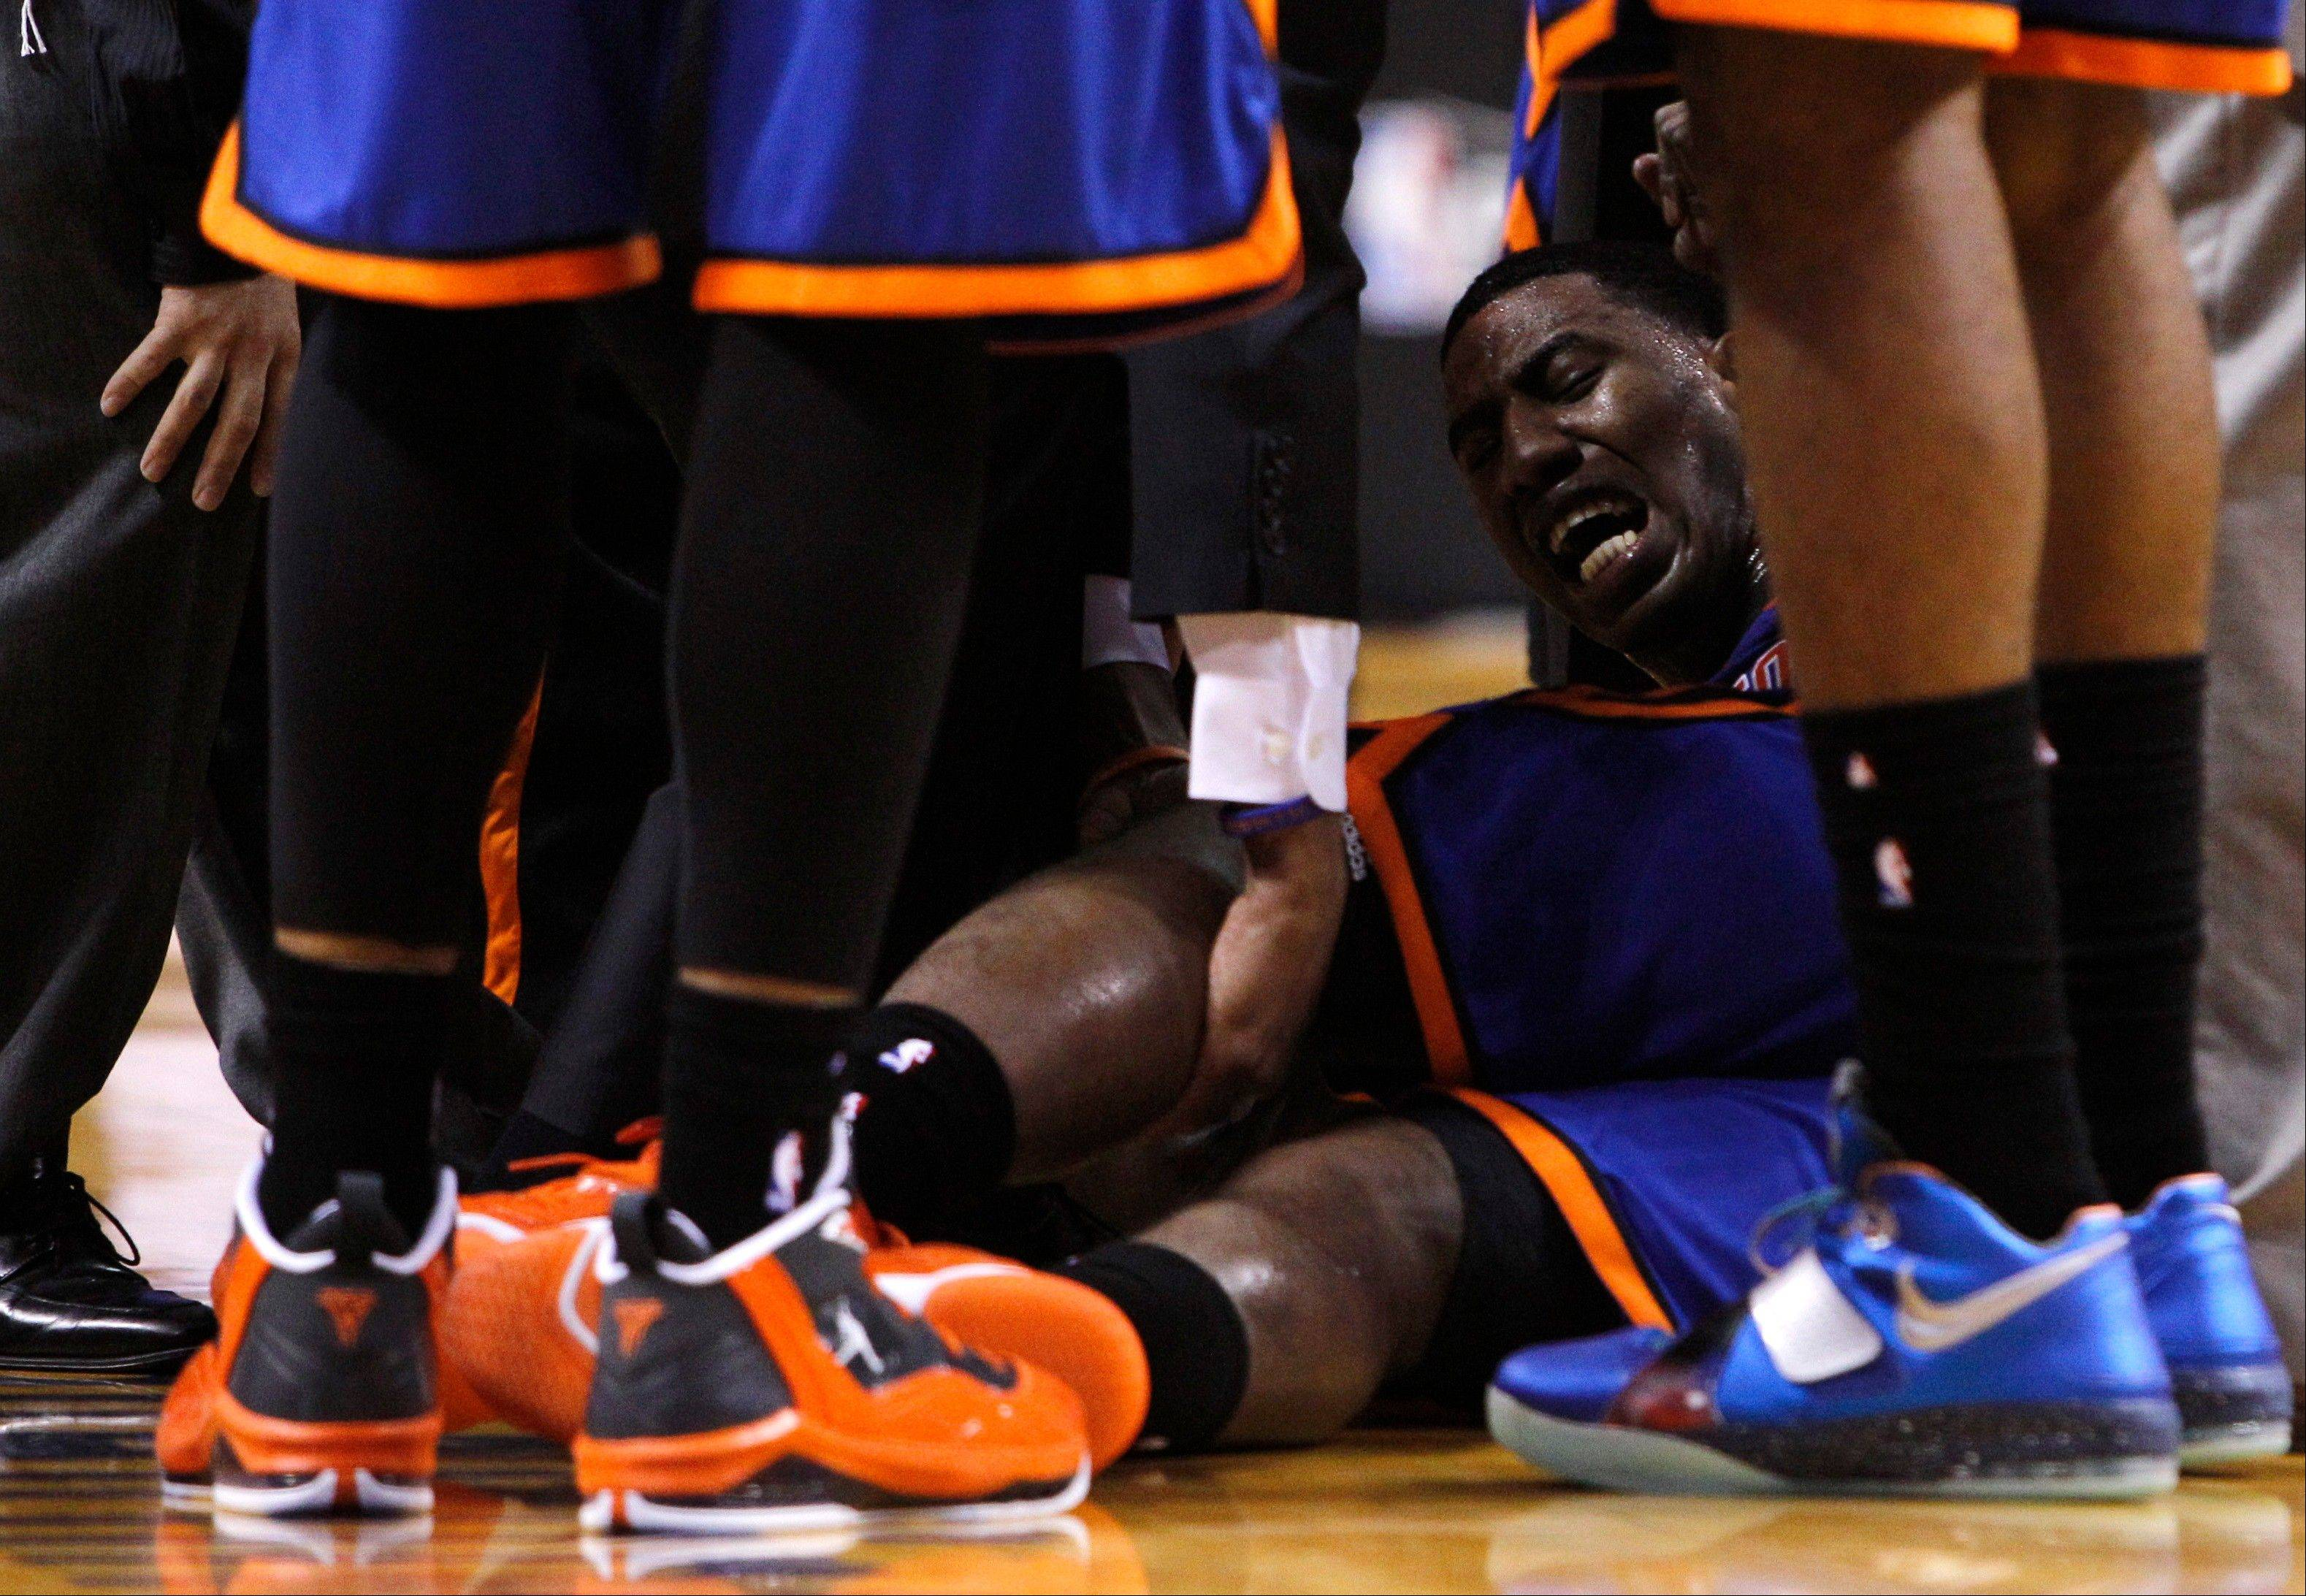 New York Knicks' Iman Shumpert, center, is helped up from the court after an injury Saturday in the second half during an NBA basketball game against the Miami Heat in the first round of the Eastern Conference playoffs in Miami.